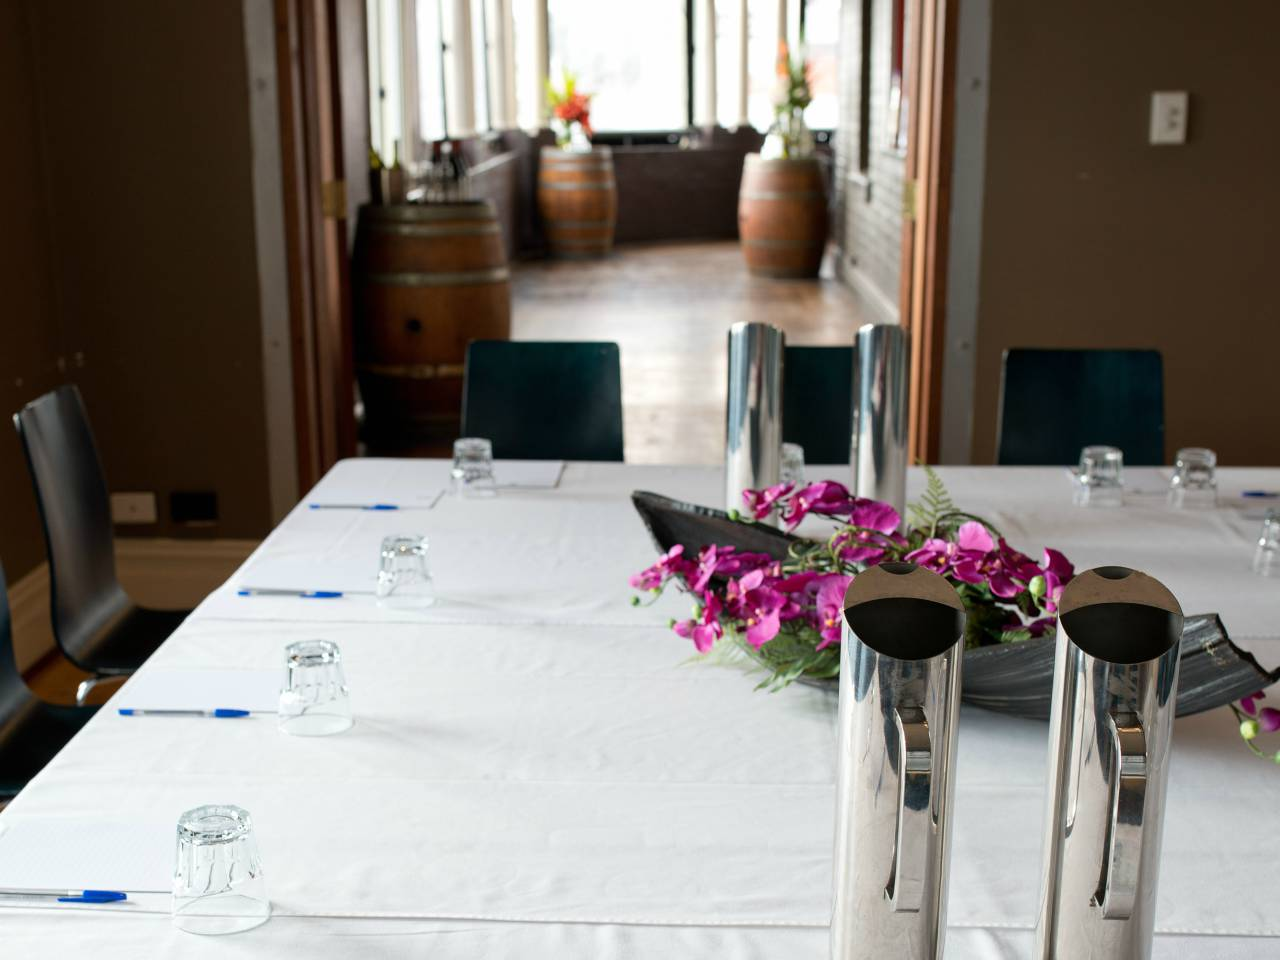 Meeting Room Table Prepared For A Meeting.